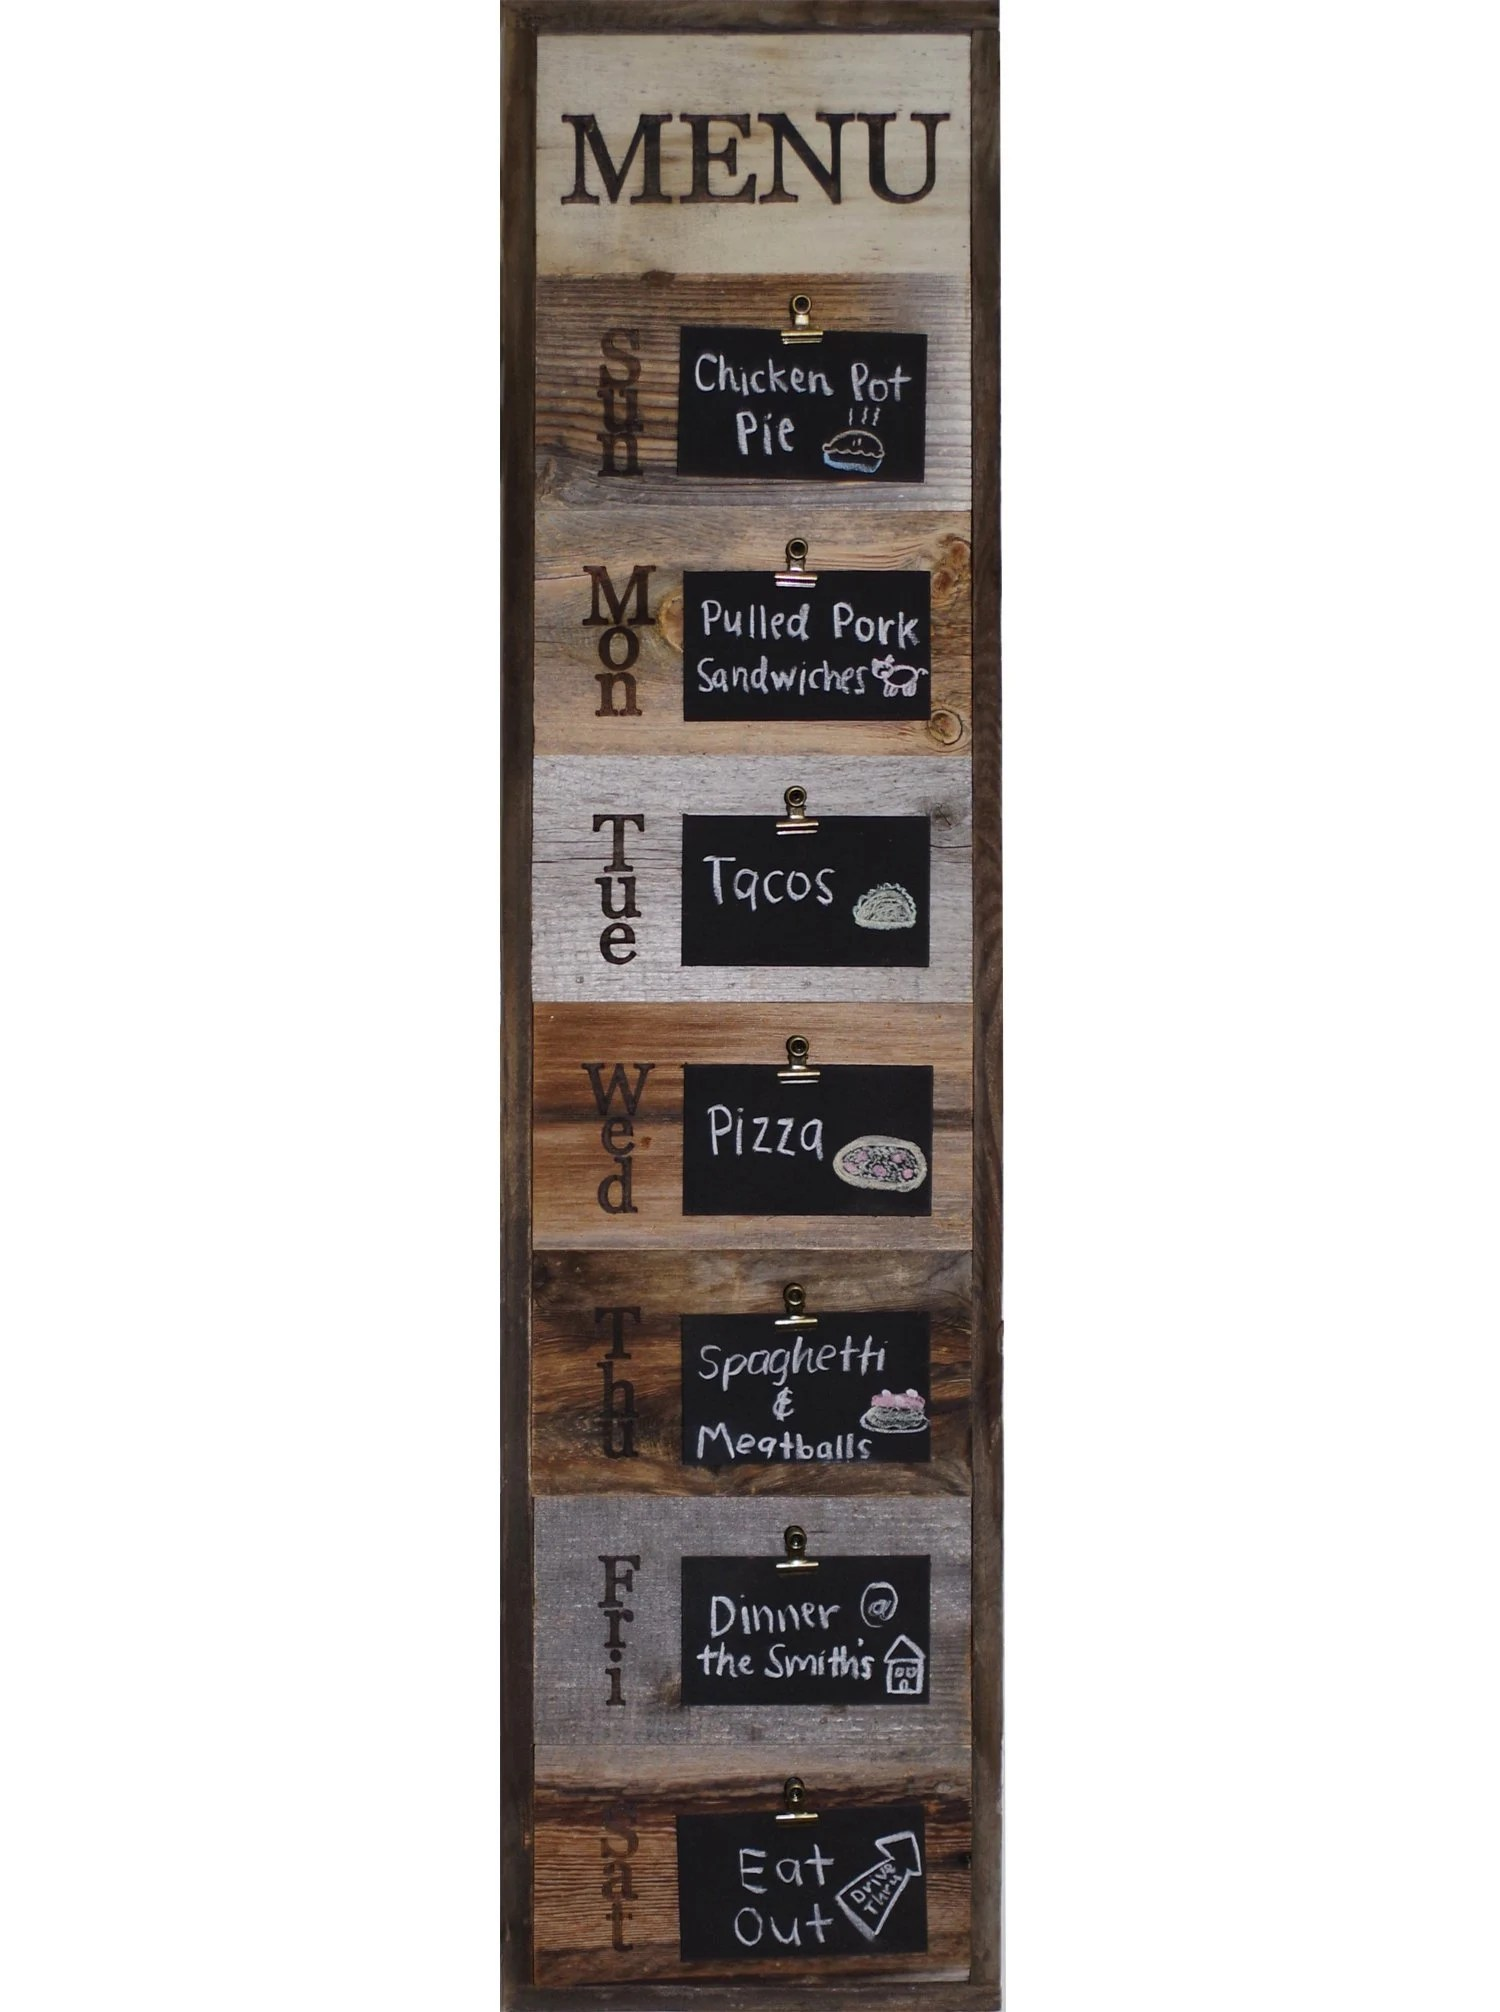 Vertical Wood Slat Wall Reclaimed Wood Weekly Menu Board With Clips And Mini Chalkboard Slats Vintage Farmhouse Kitchen Display Sign Rustic Decor